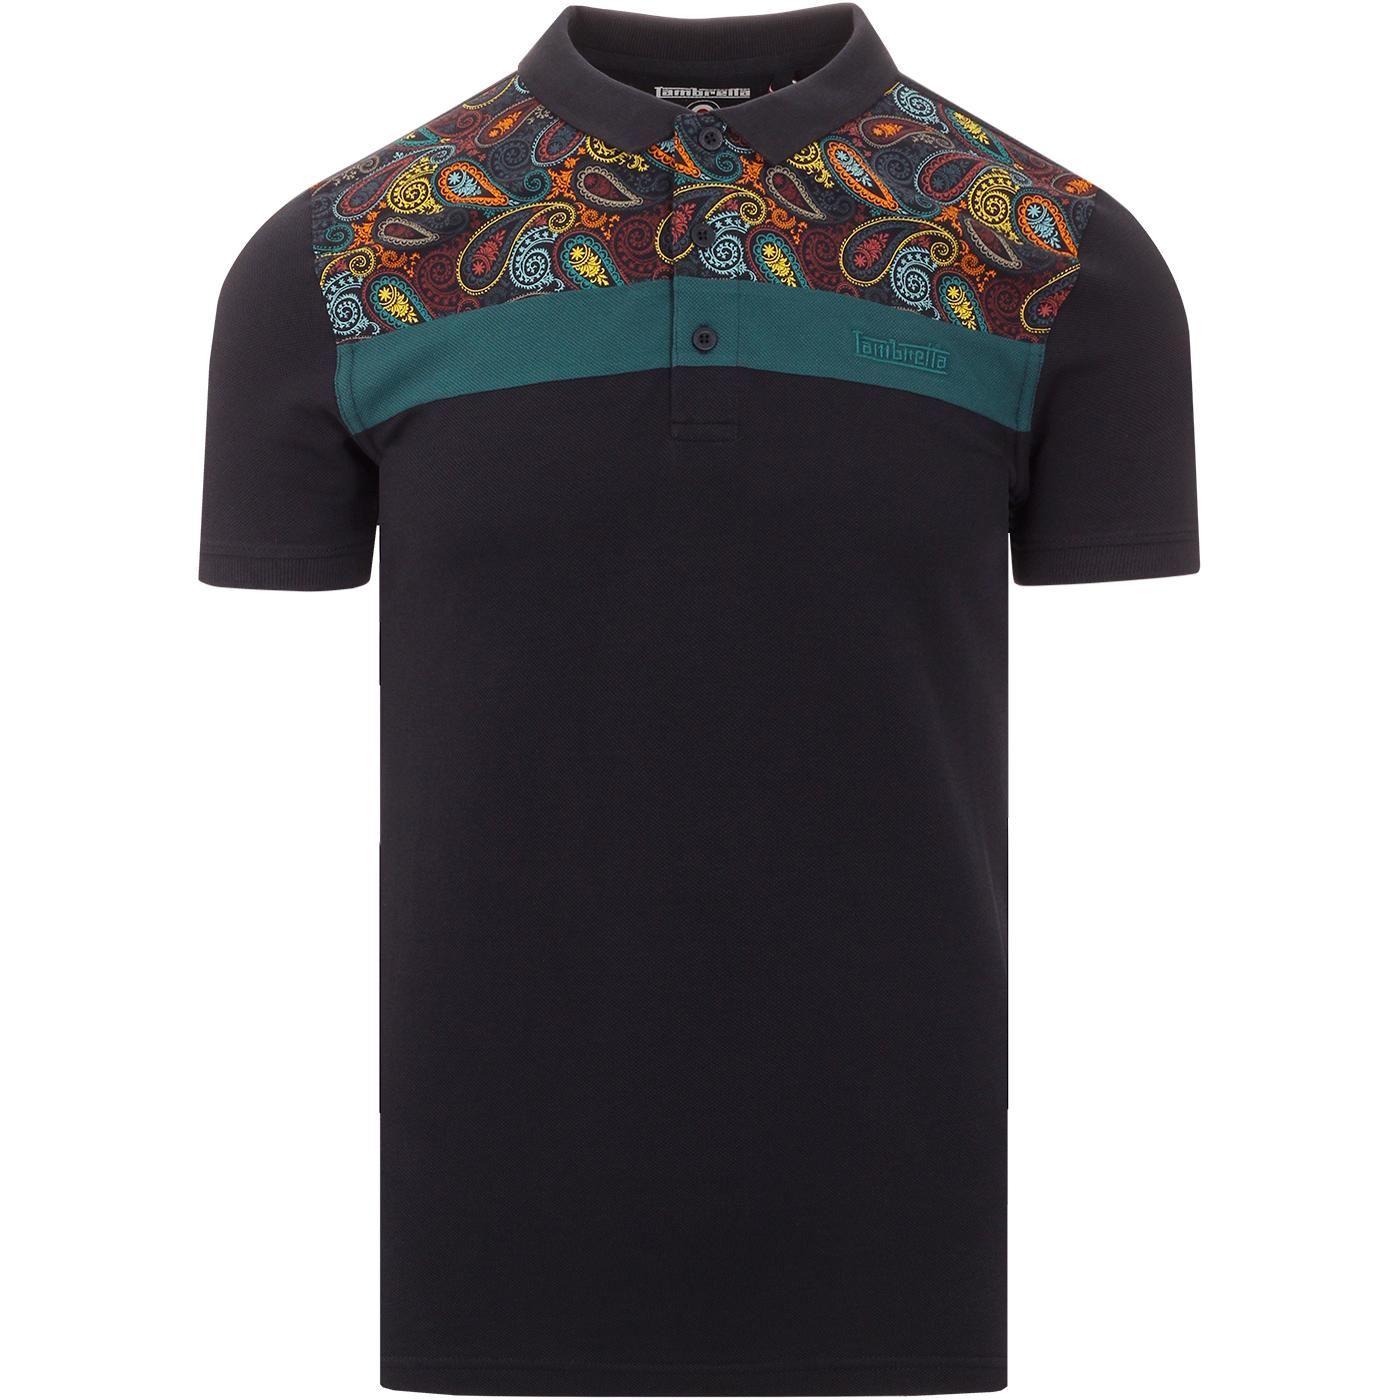 LAMBRETTA Retro 60s Paisley Panel Pique Polo Shirt